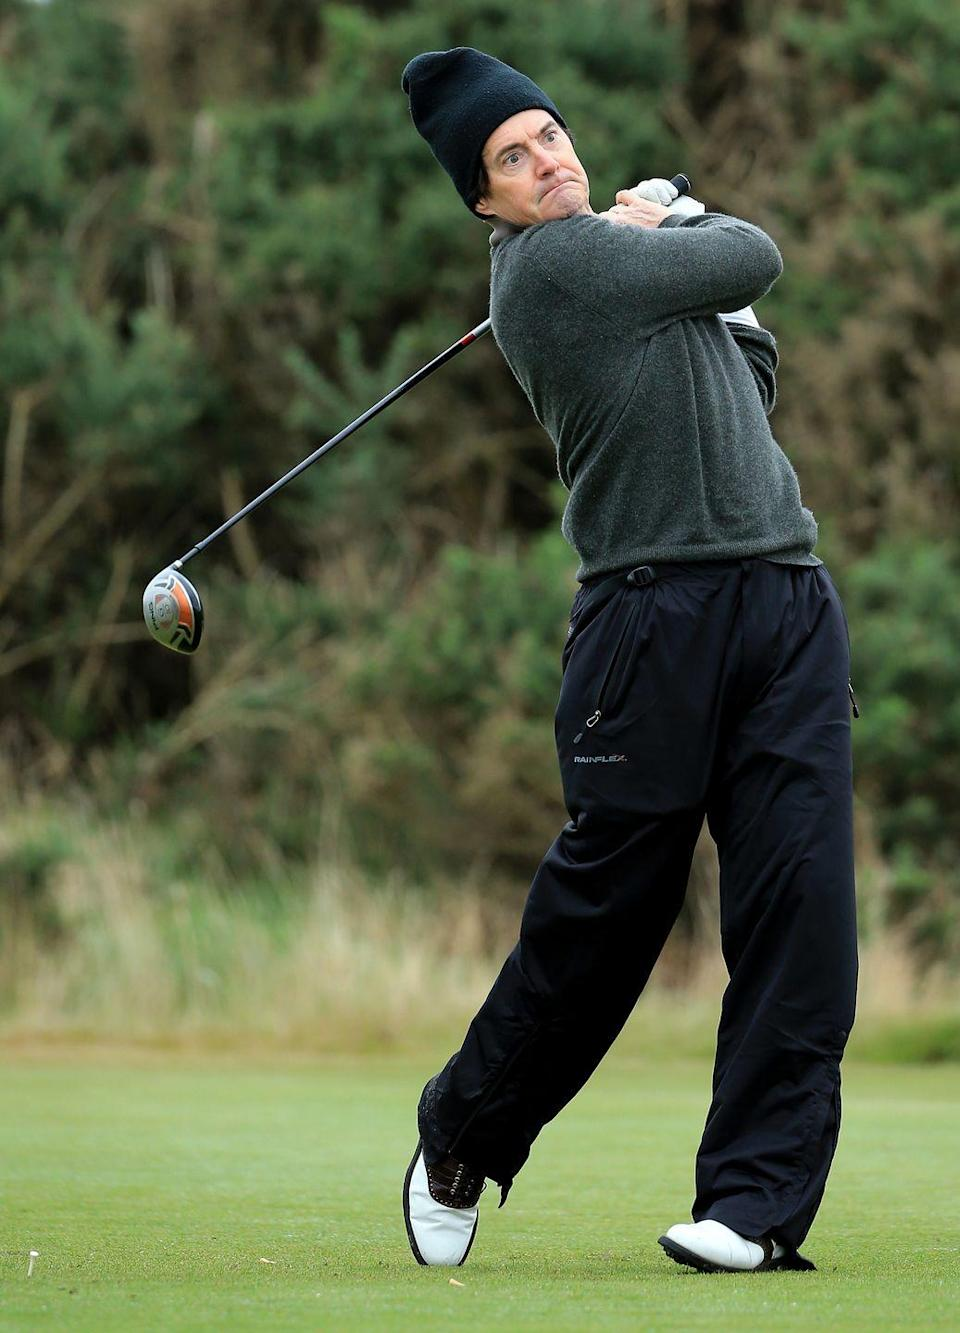 <p>Kyle MacLachlan on the first tee during a practice round at Kingsbarns for the 2013 Alfred Dunhill Links Championship.</p>